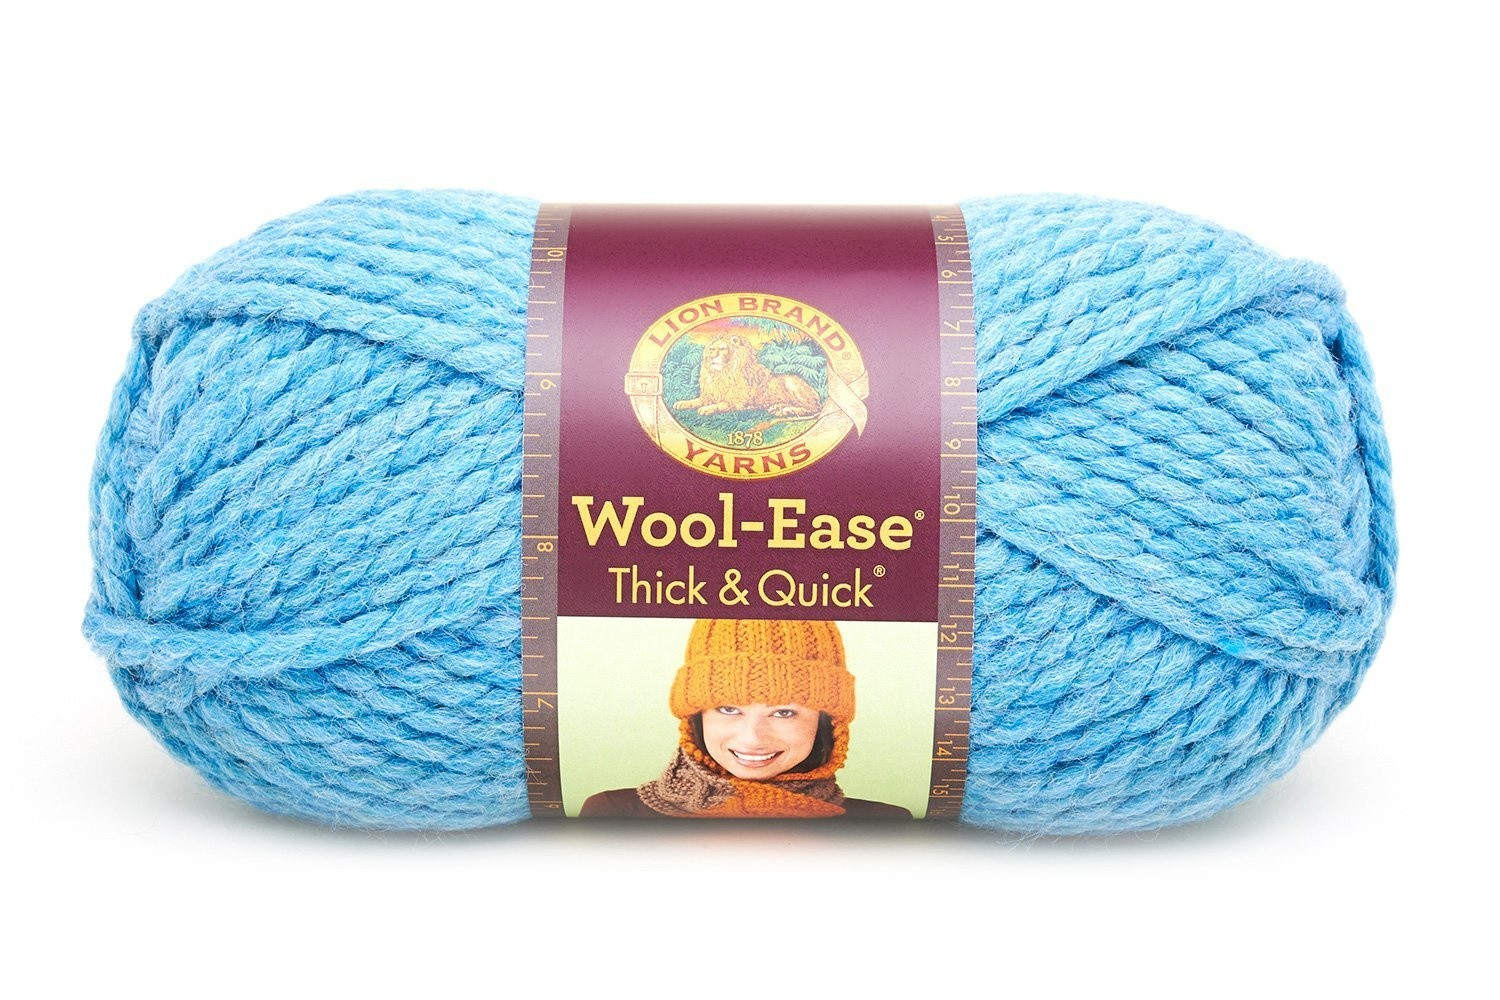 Lion Brand Wool Ease Thick and Quick Elegant Lion Brand Yarn 640 136f Wool Ease Thick and Quick Yarn Of Incredible 48 Images Lion Brand Wool Ease Thick and Quick